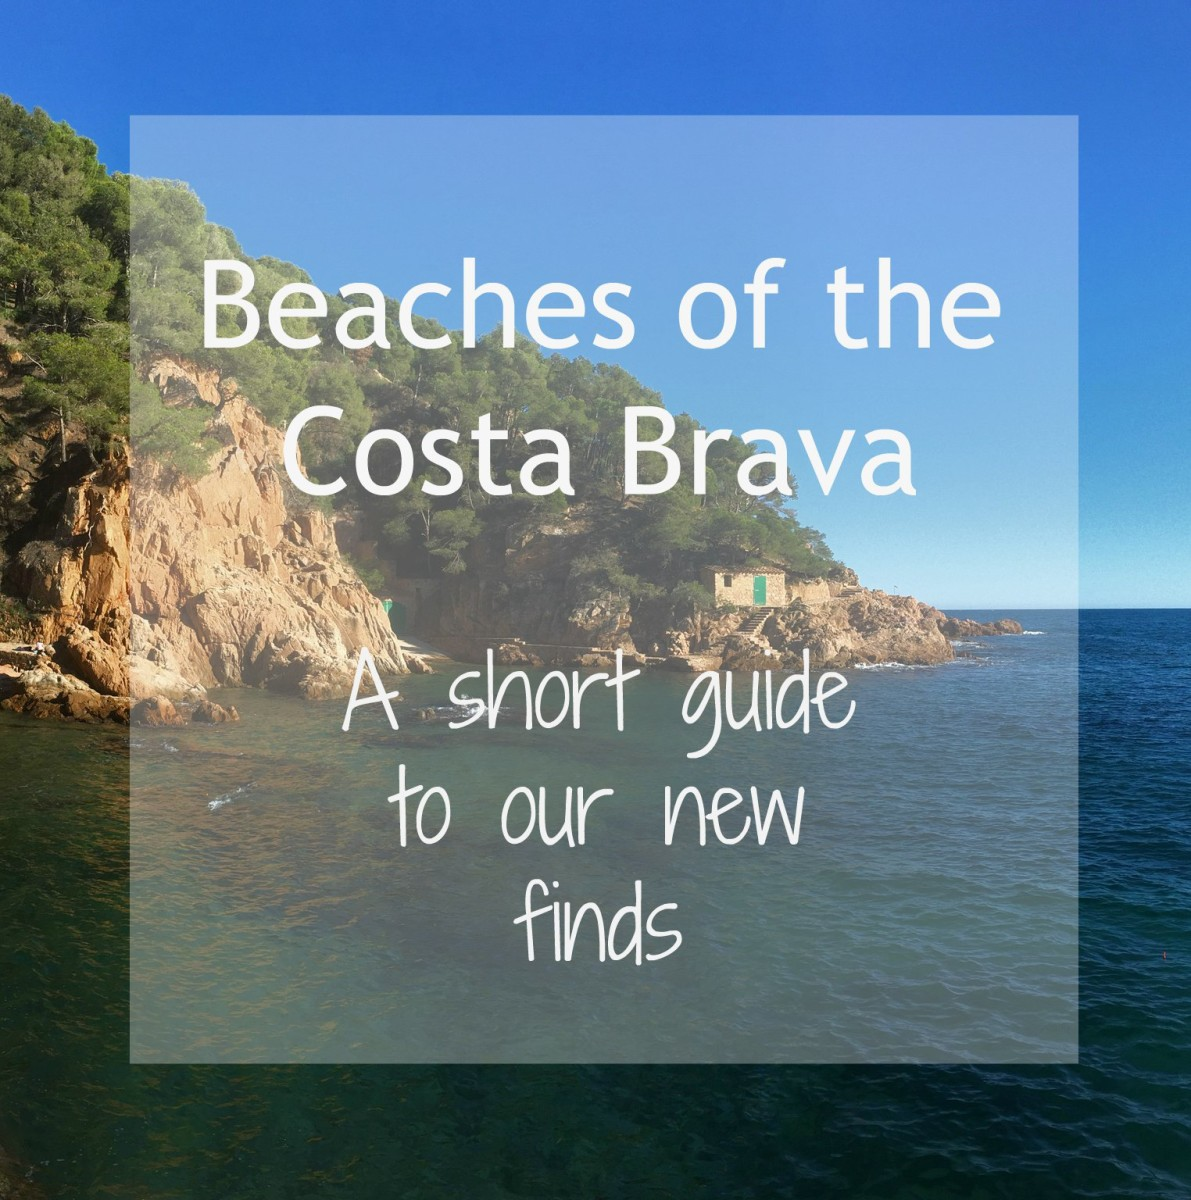 Costa Brava Beaches - guide to our new finds